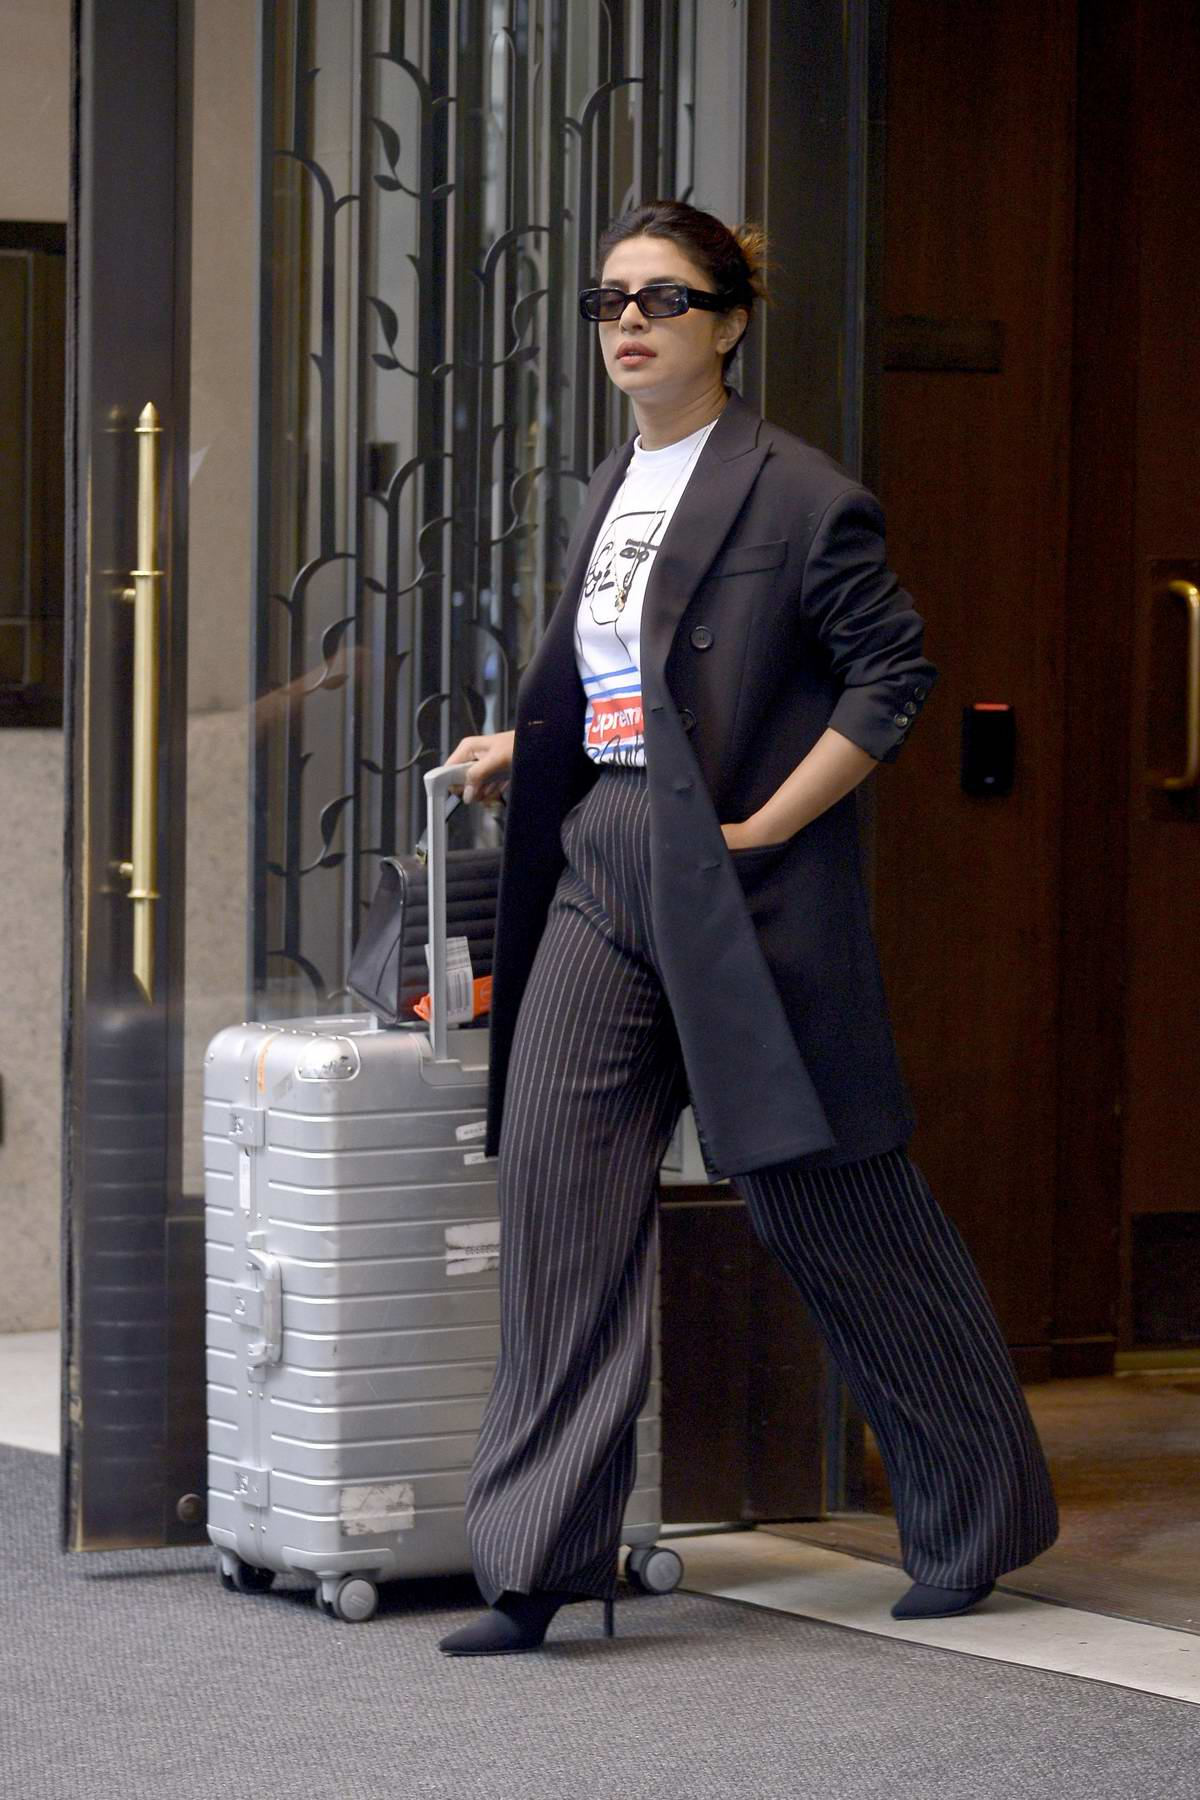 Priyanka Chopra spotted in a black blazer with pinstriped trousers as she heads out with a suitcase New York City